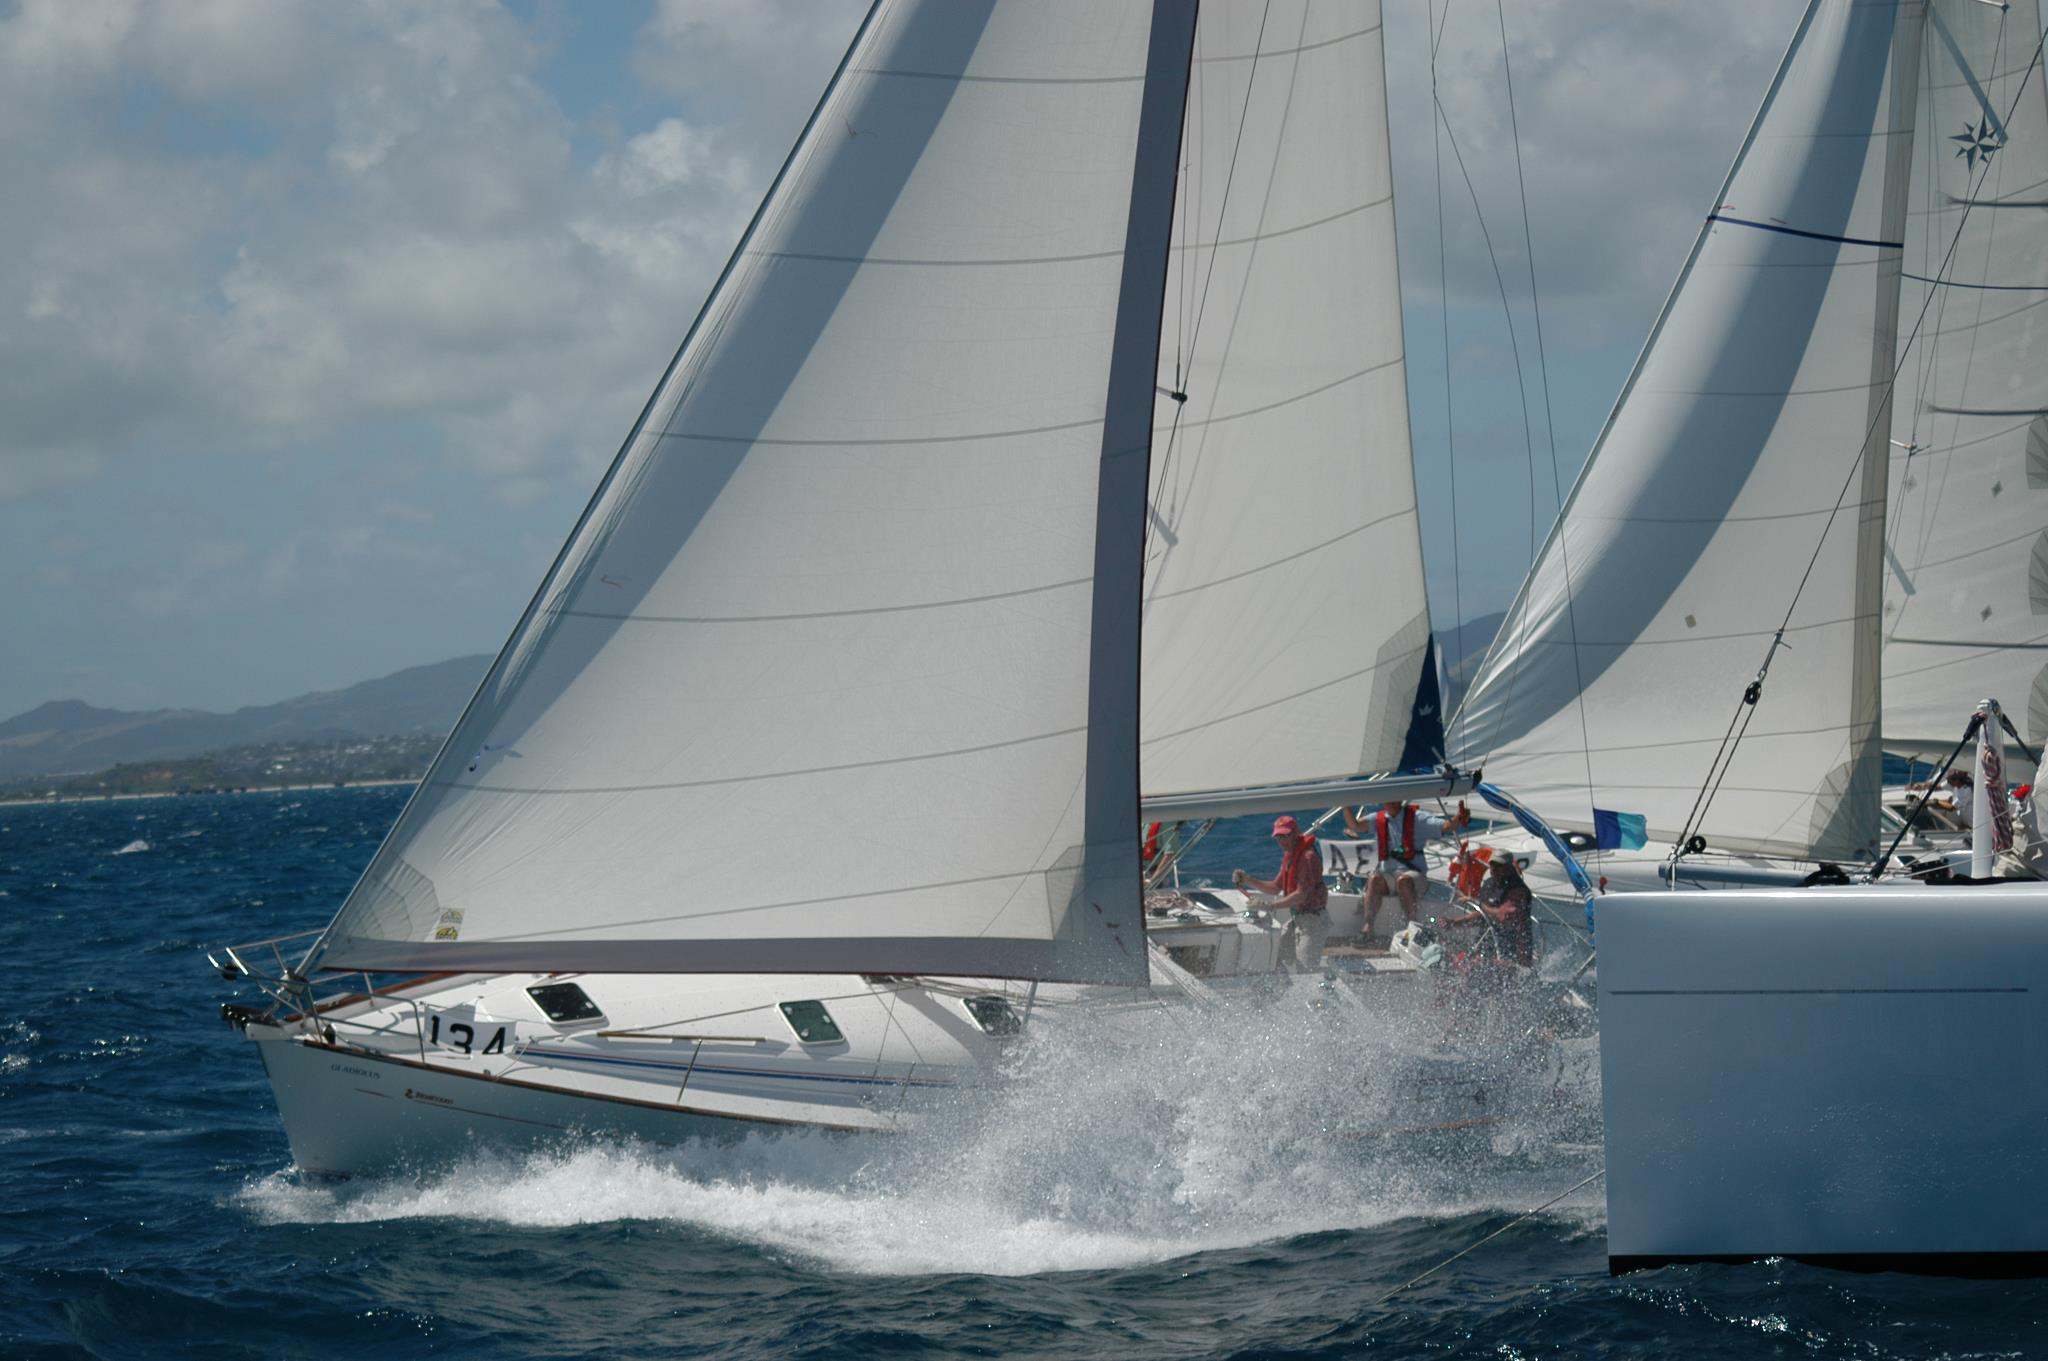 Segelevents: Antigua Sailing Week & Heinecken Regatta